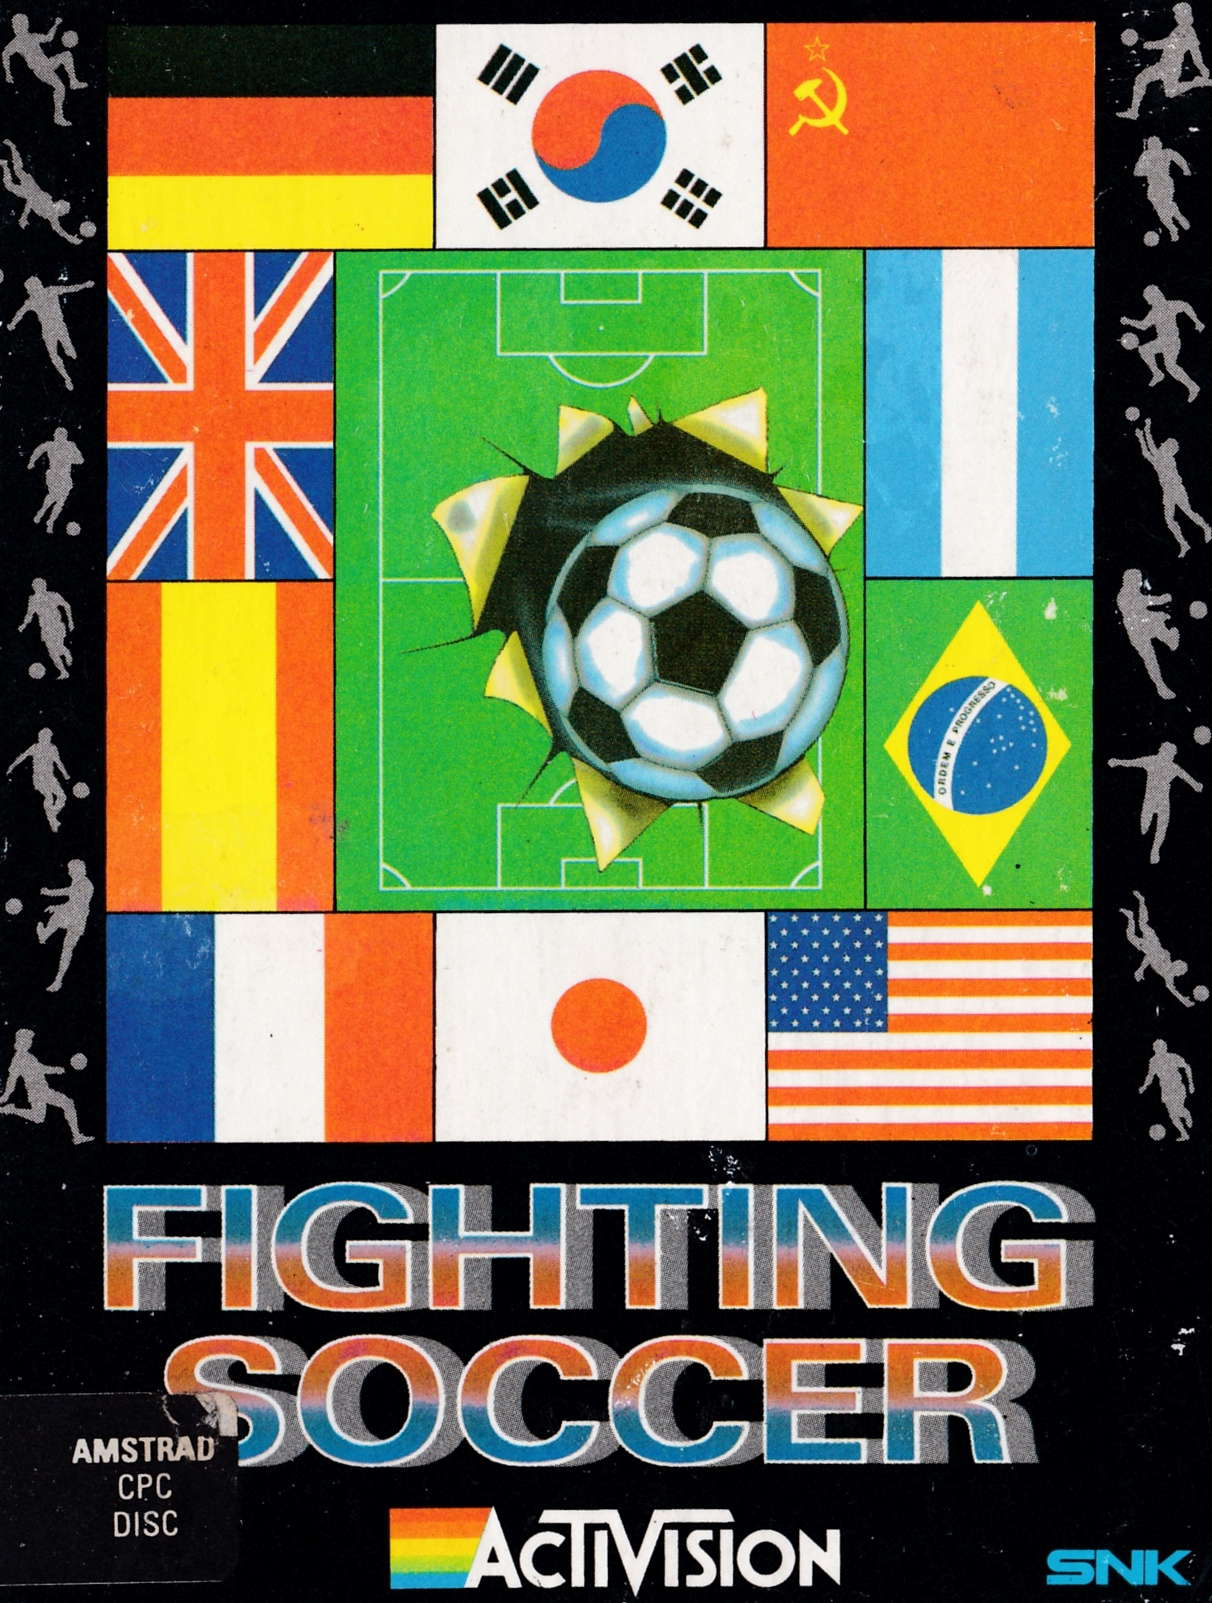 cover of the Amstrad CPC game Fighting Soccer  by GameBase CPC